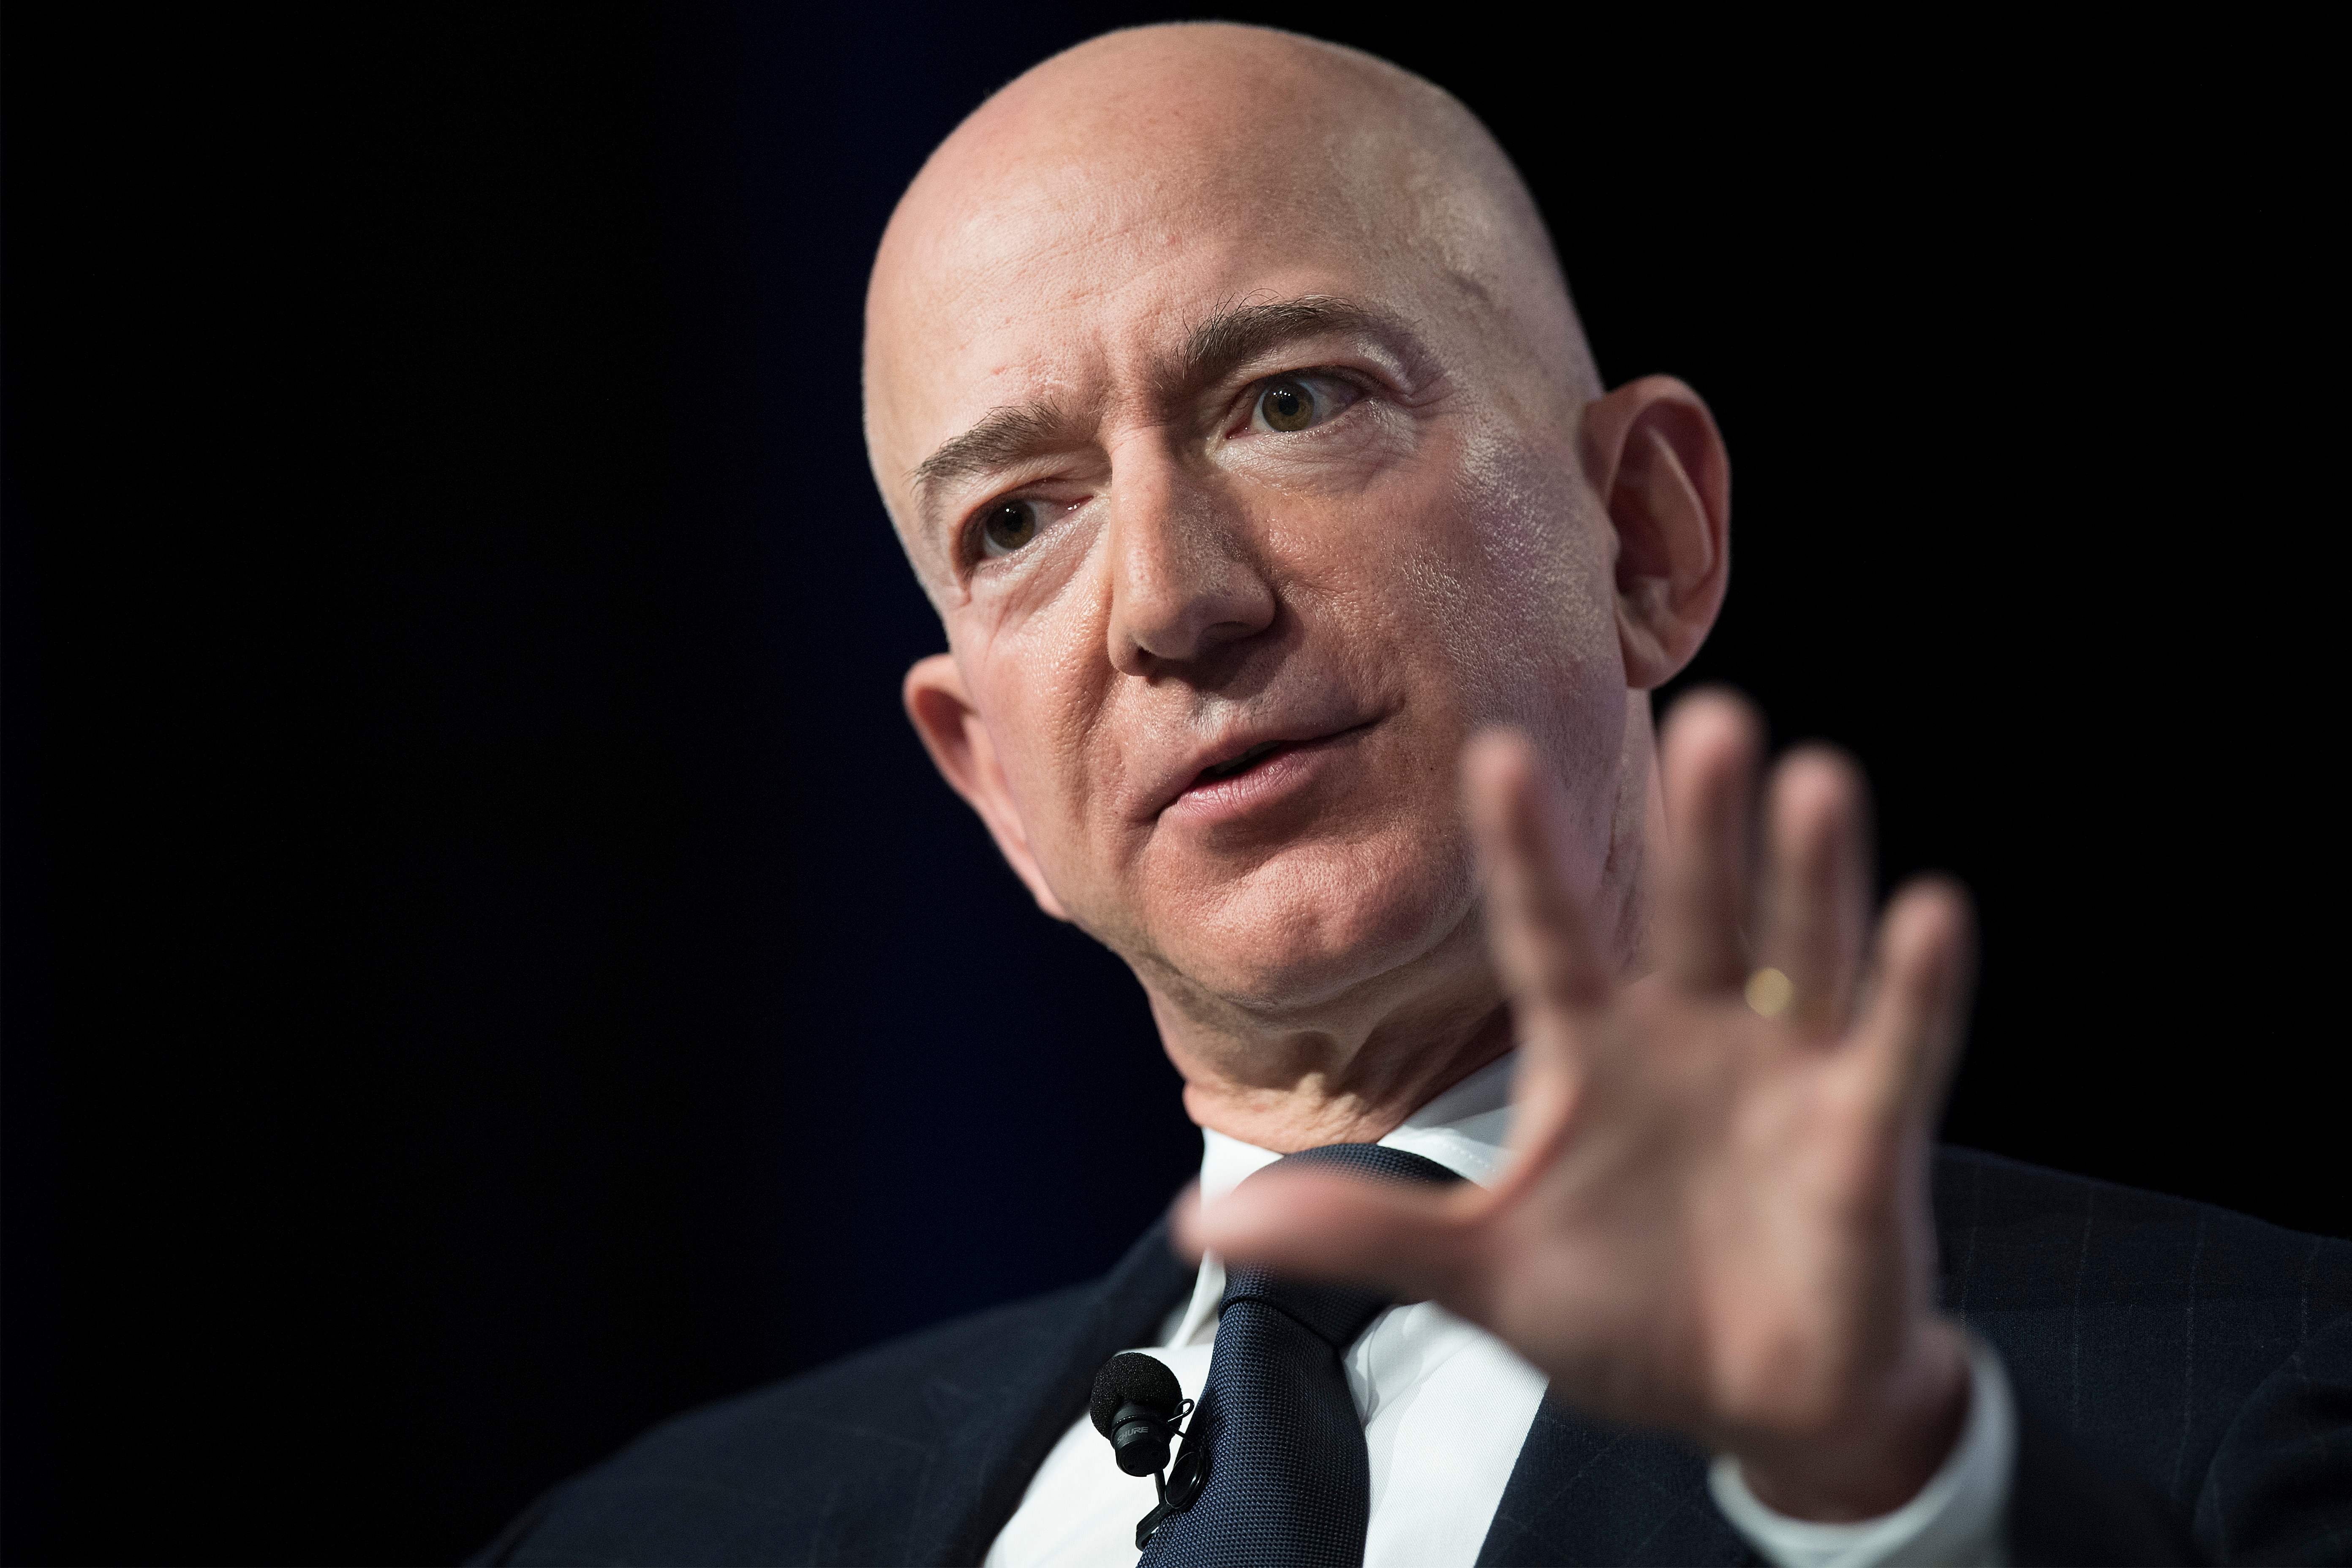 (FILES) In this file photo taken on September 19, 2018 Amazon and Blue Origin founder Jeff Bezos provides the keynote address at the Air Force Association's Annual Air, Space & Cyber Conference in Oxen Hill, Maryland. - Jeff Bezos remains the world's richest person, ahead of Bill Gates and Warren Buffett, according to the latest Forbes list of the ultra wealthy. But while things are largely stable up top in that ranking, Facebook founder Mark Zuckerberg dropped three spots and former New York mayor Michael Bloomberg rose by two. According to the list announced March 4, 2019 by Forbes, the riches of Bezos, 55, have swelled by $19 billion in one year and he is now worth $131 billion. (Photo by Jim WATSON / AFP)